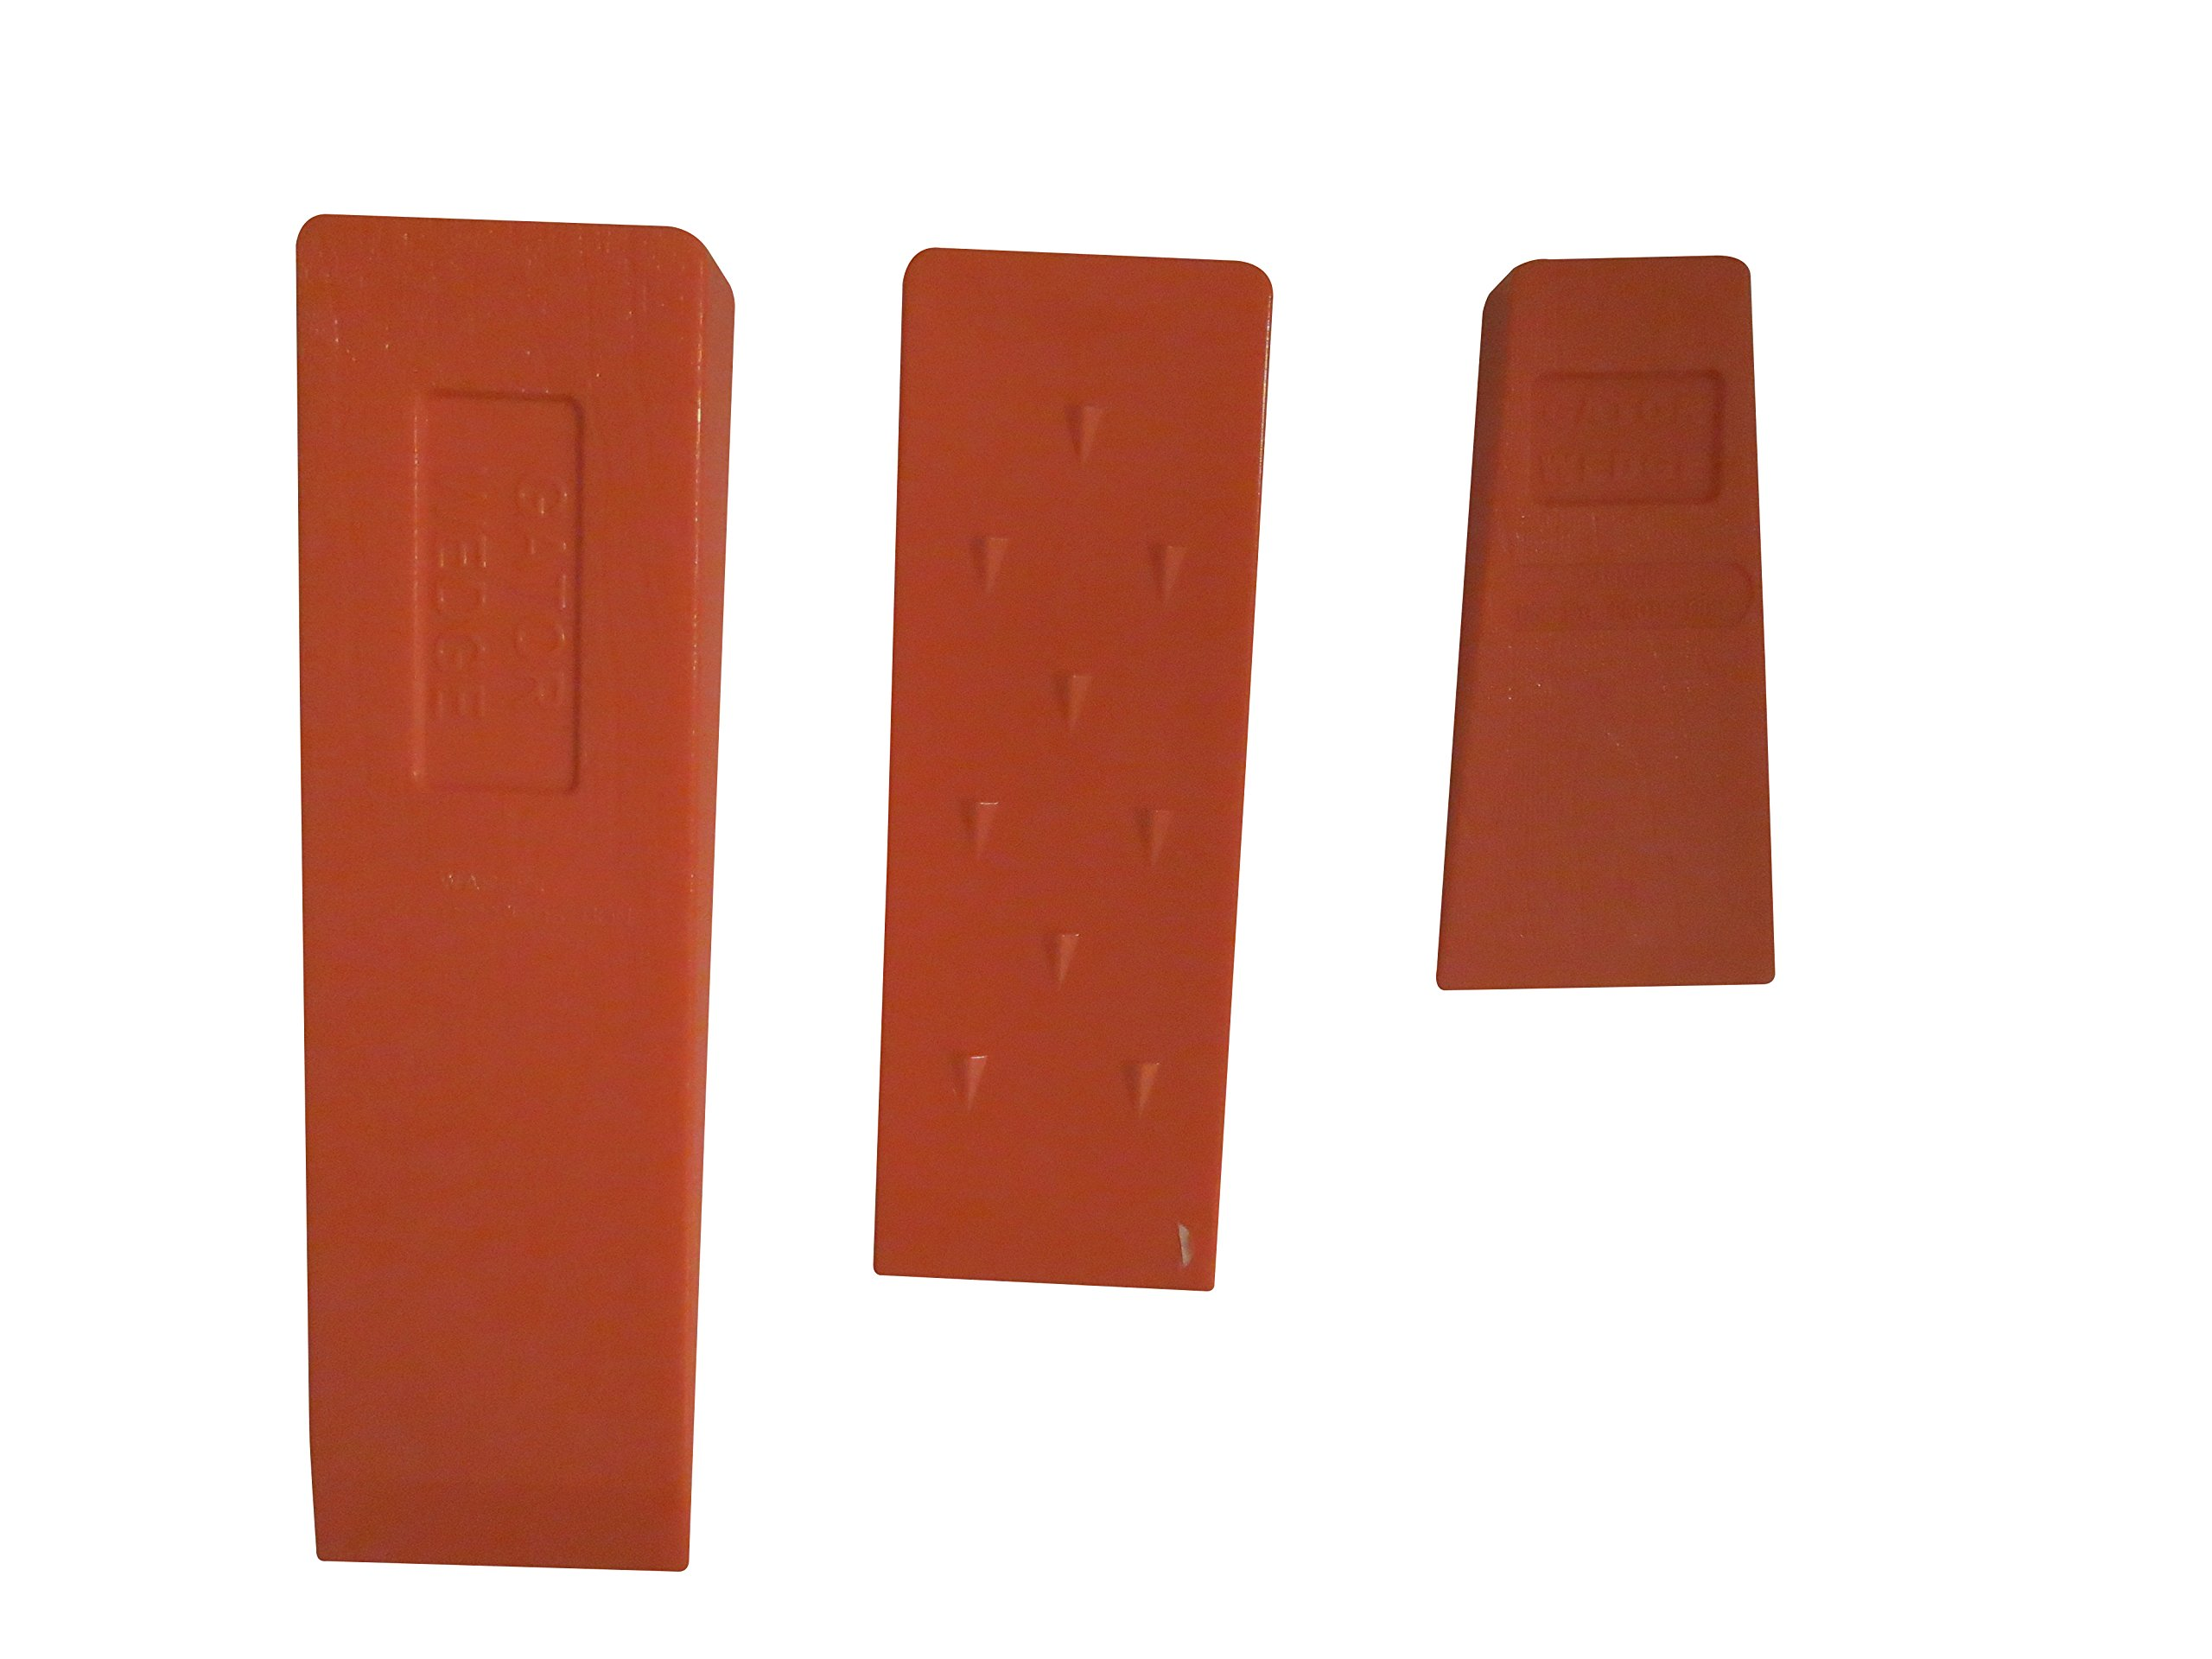 USA Made Gator Wedge Set Spiked Felling Wedges (Set of 3 Sizes) 5.5'' 8'' and 10'', ABS Plastic, Logging Supplies